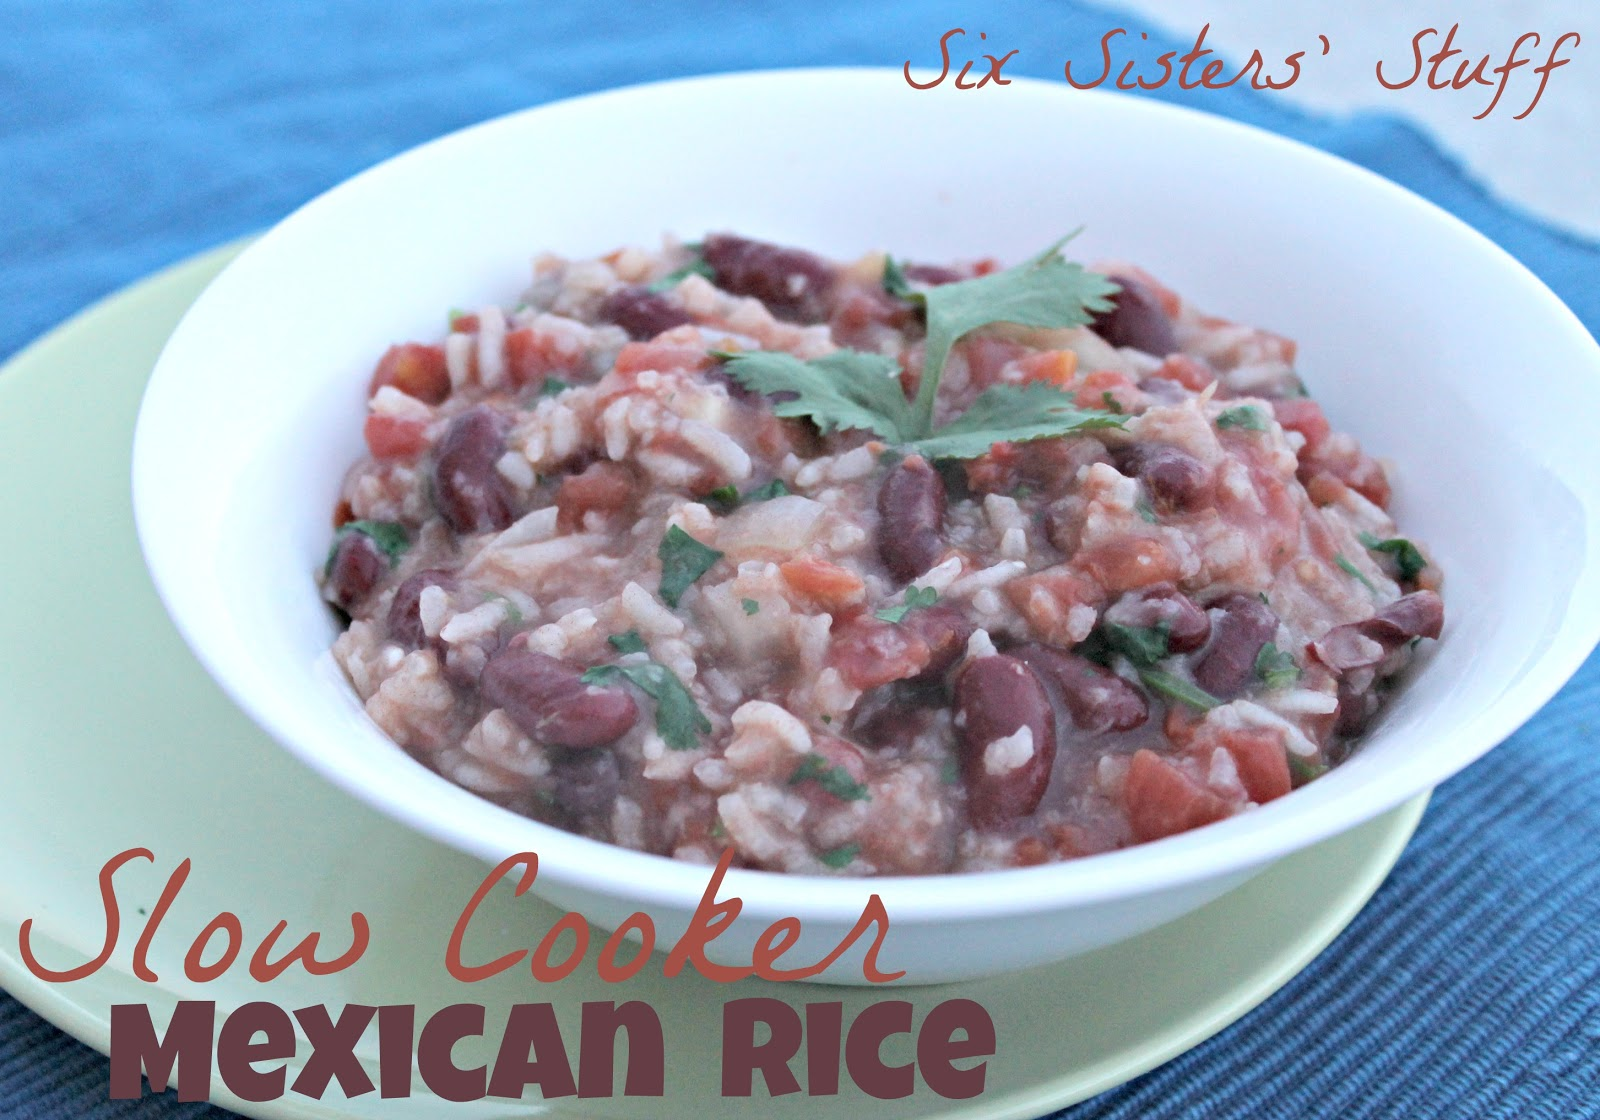 Slow Cooker Mexican Rice | Six Sisters' Stuff